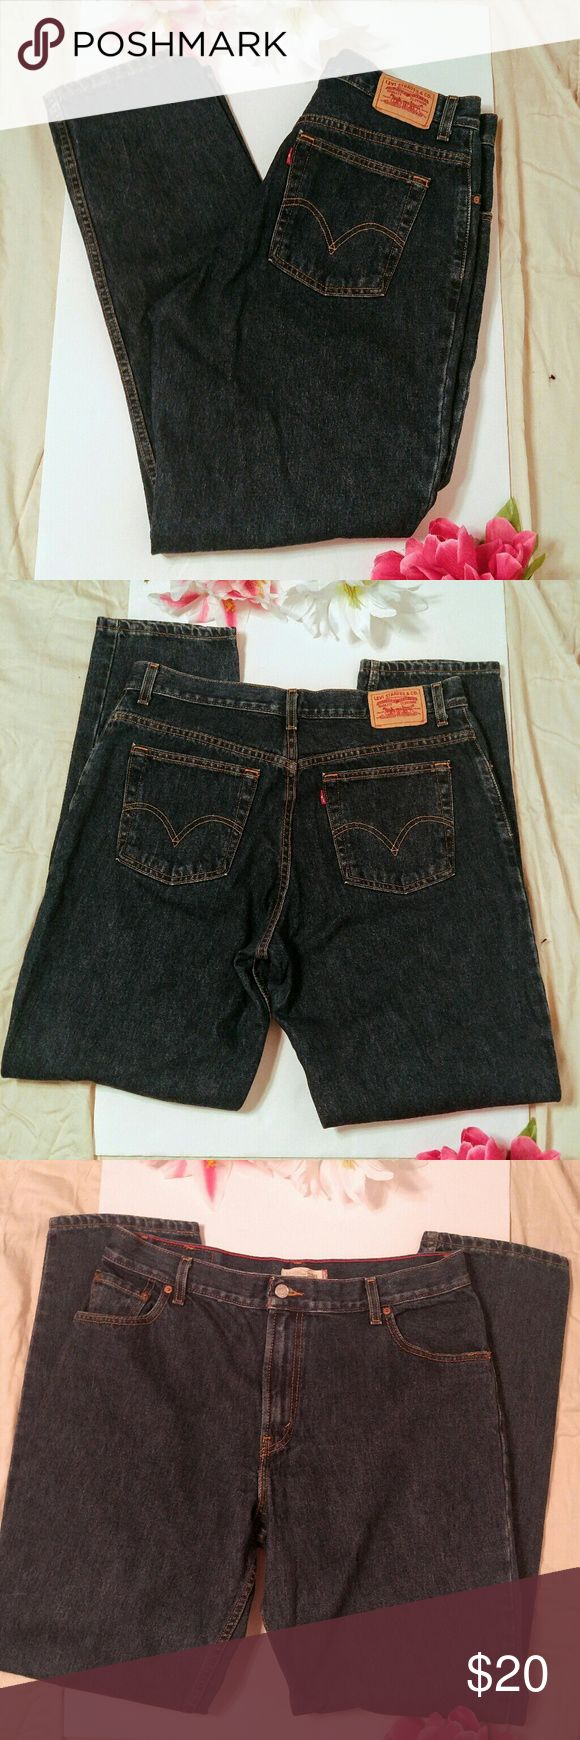 """Levis 550 Relaxed Tapered Jean Levis 550 Relaxed Tapered Jean Size 16L 17"""" flat lay waist measurement 32"""" inseam 100% cotton  Worn only a few times. Very good shape and true to size. Deep indigo blue wash.  Fast Shipping Cute Packaging Levi's Jeans Straight Leg"""